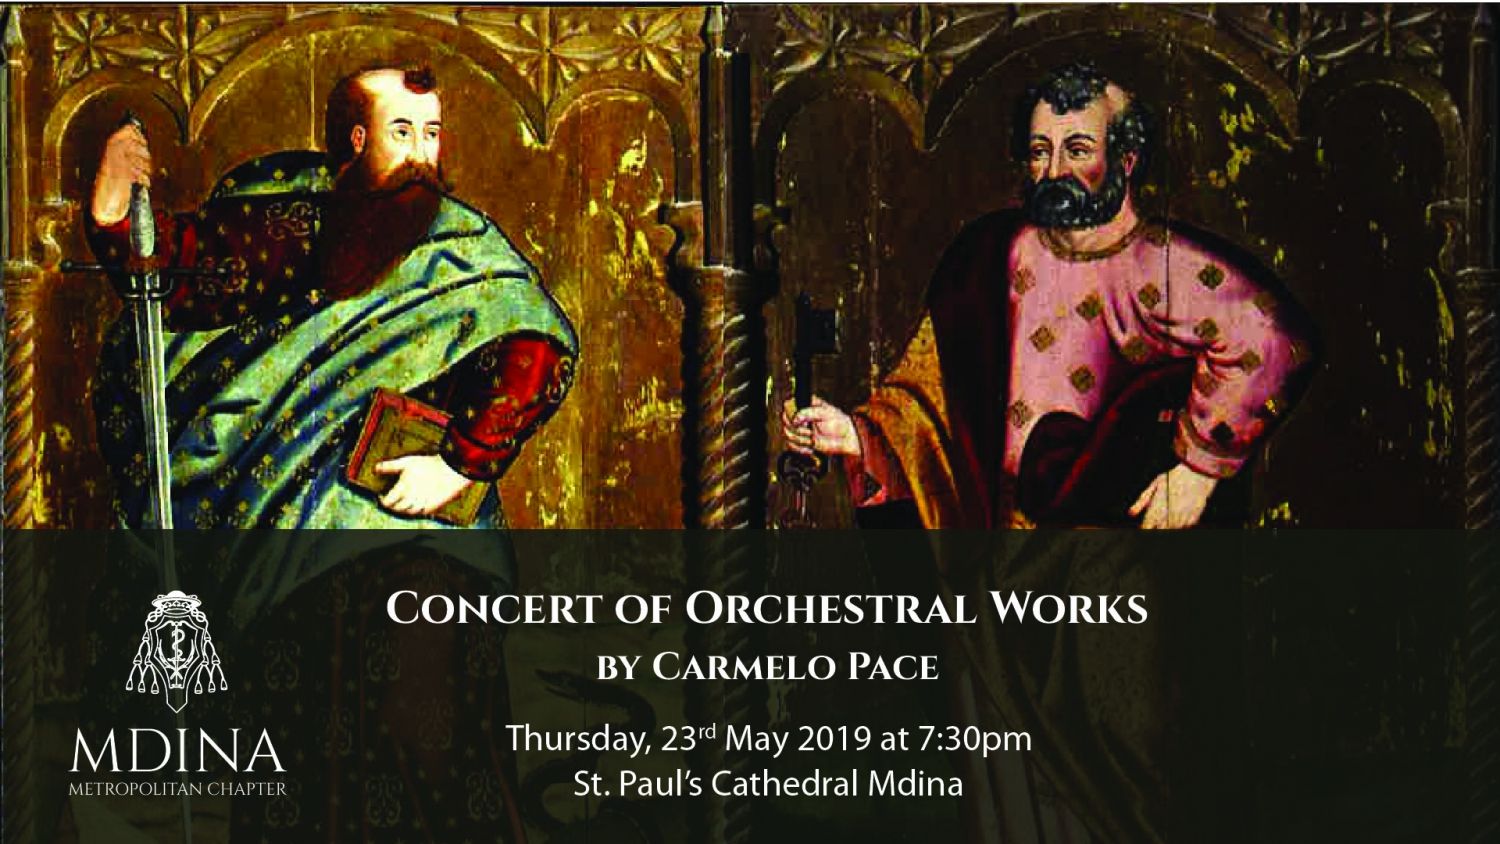 Concert of Orchestral Works by Carmelo Pace